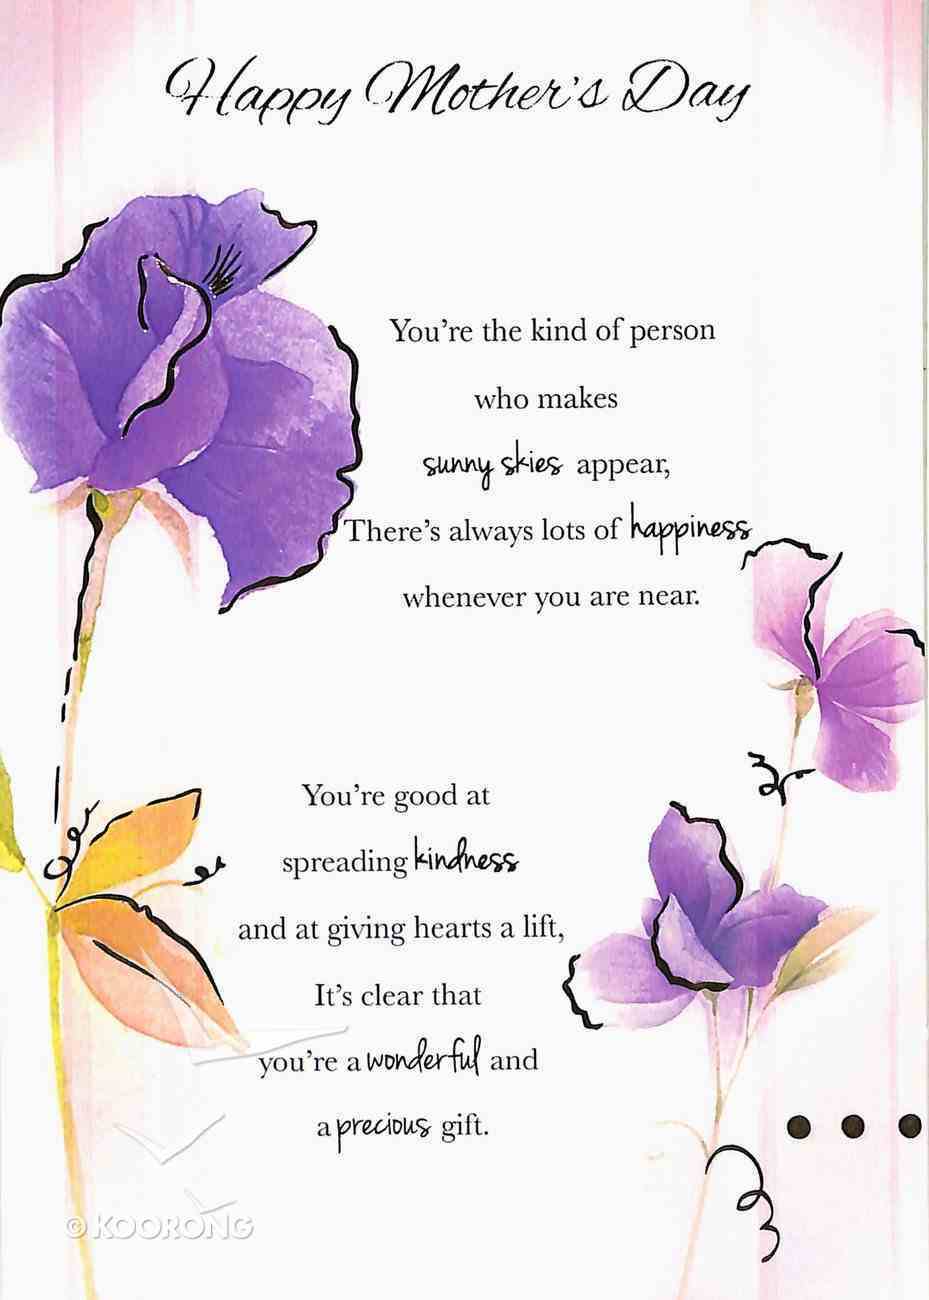 Happy Mother's Day (Purple Flowers, Gold Letters) Cards